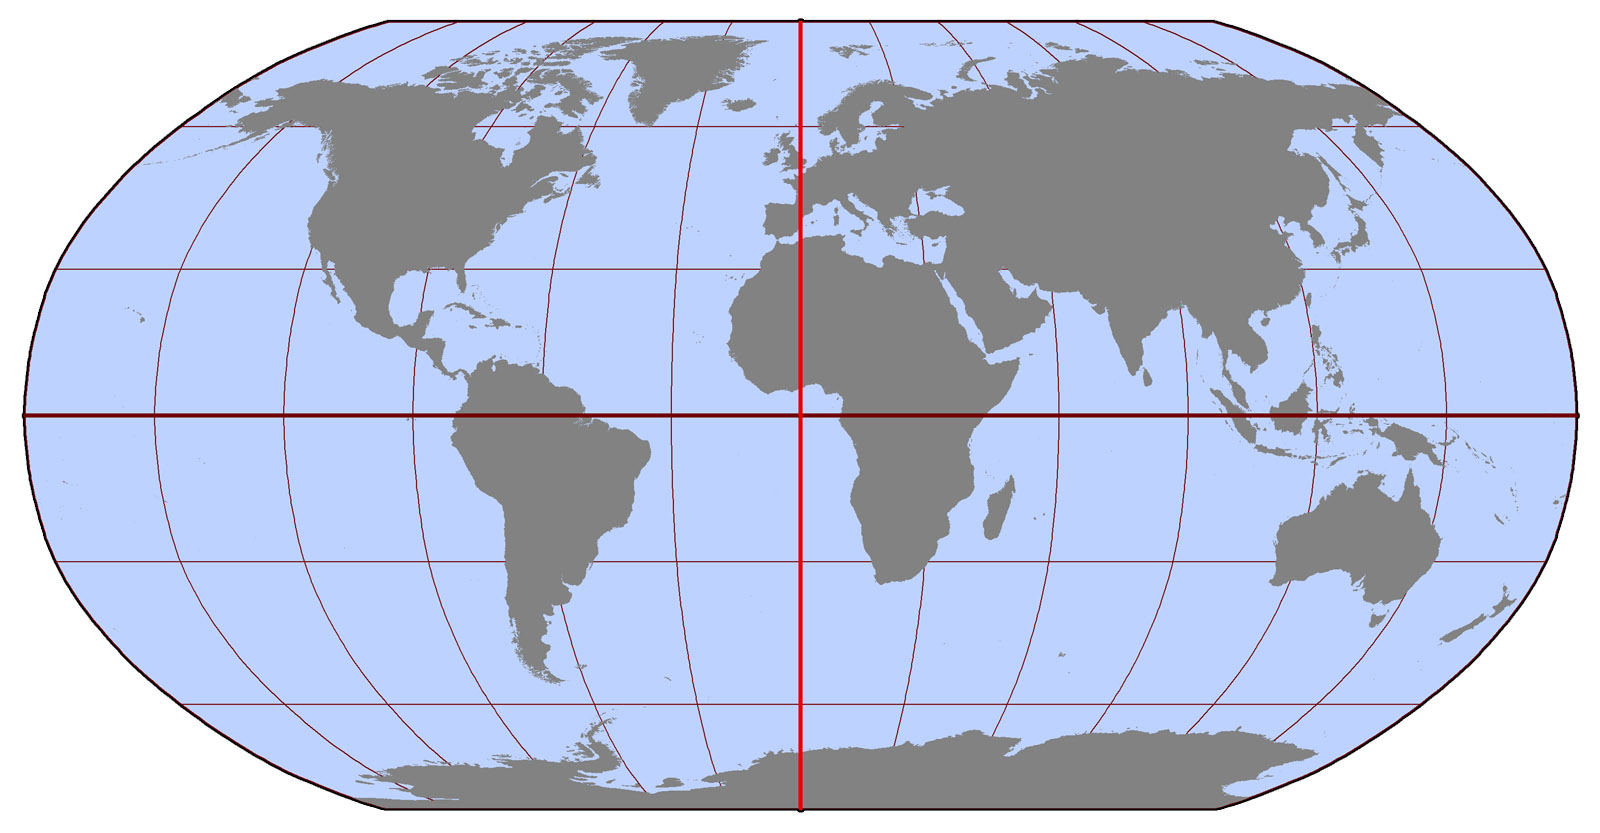 FilePrimemeridian Nolabelsjpg Wikimedia Commons - Map of the world with no labels